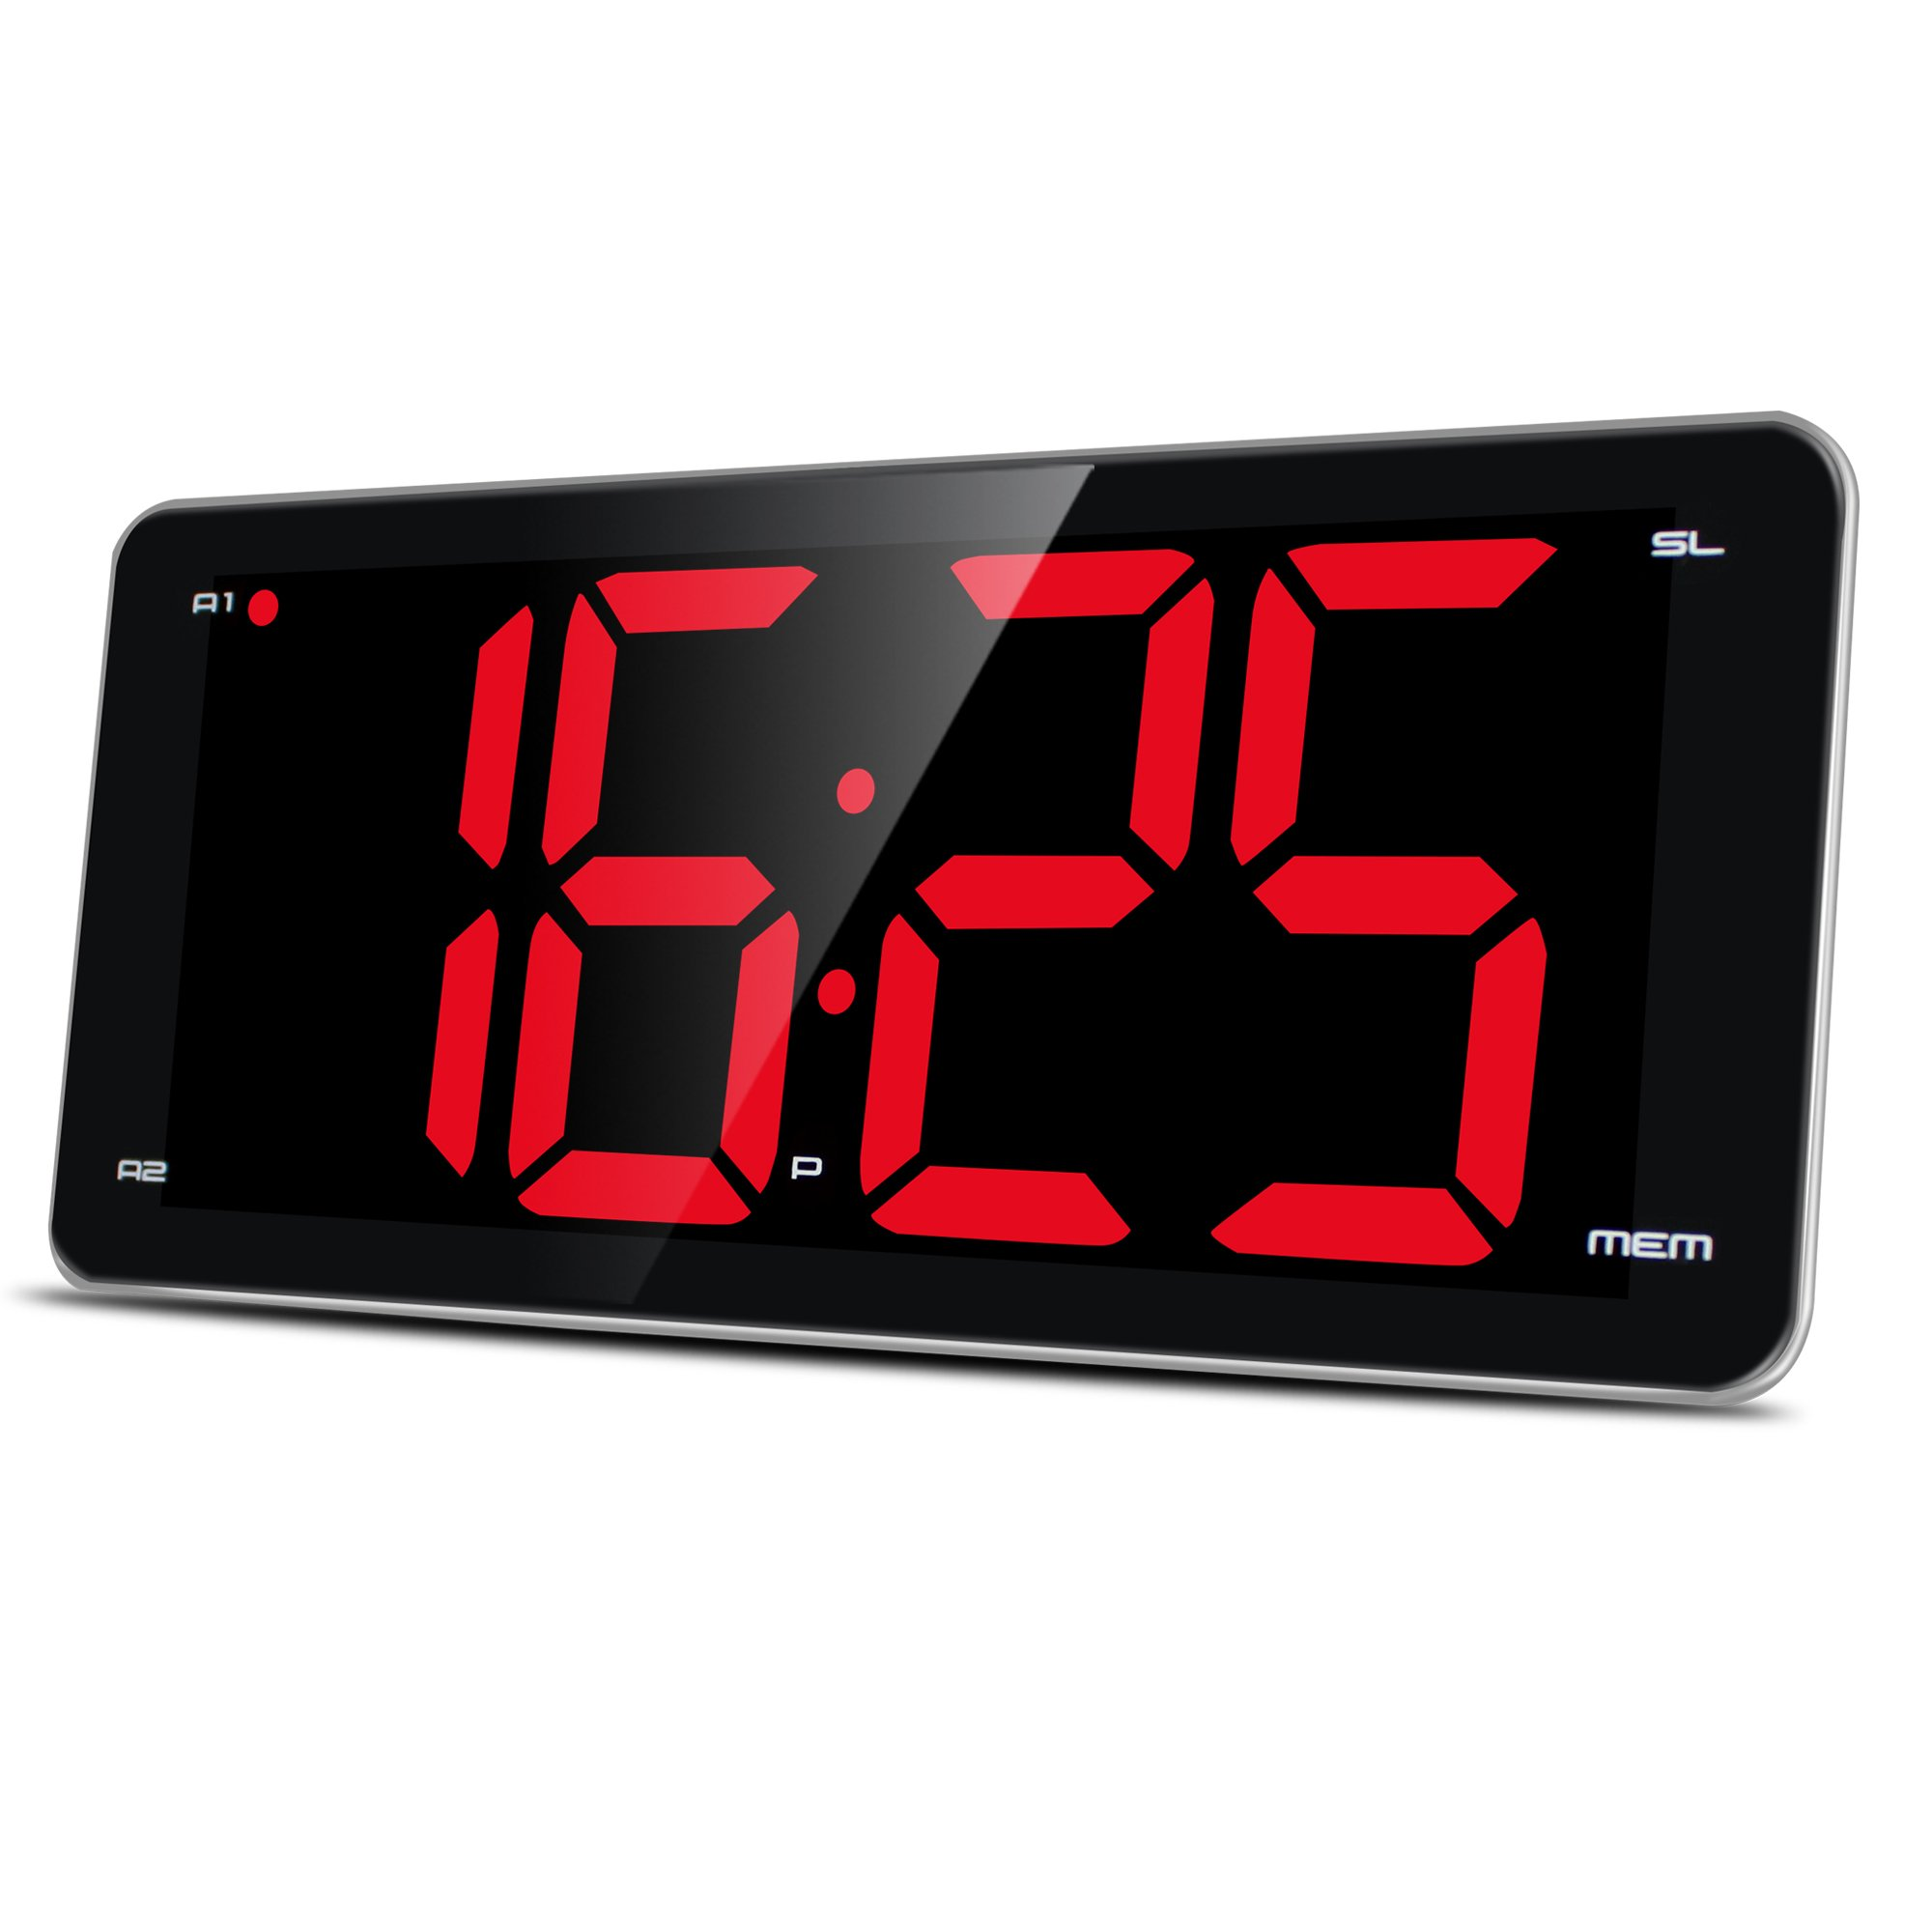 9.5'' Large Display Alarm Clock Radio, Jumbo LED Digital Alarm Clock with FM Radio, Full Range Dimmer, Dual Smart Alarm, Sleep Timer, Snooze, Battery Backup by LIELONGREN